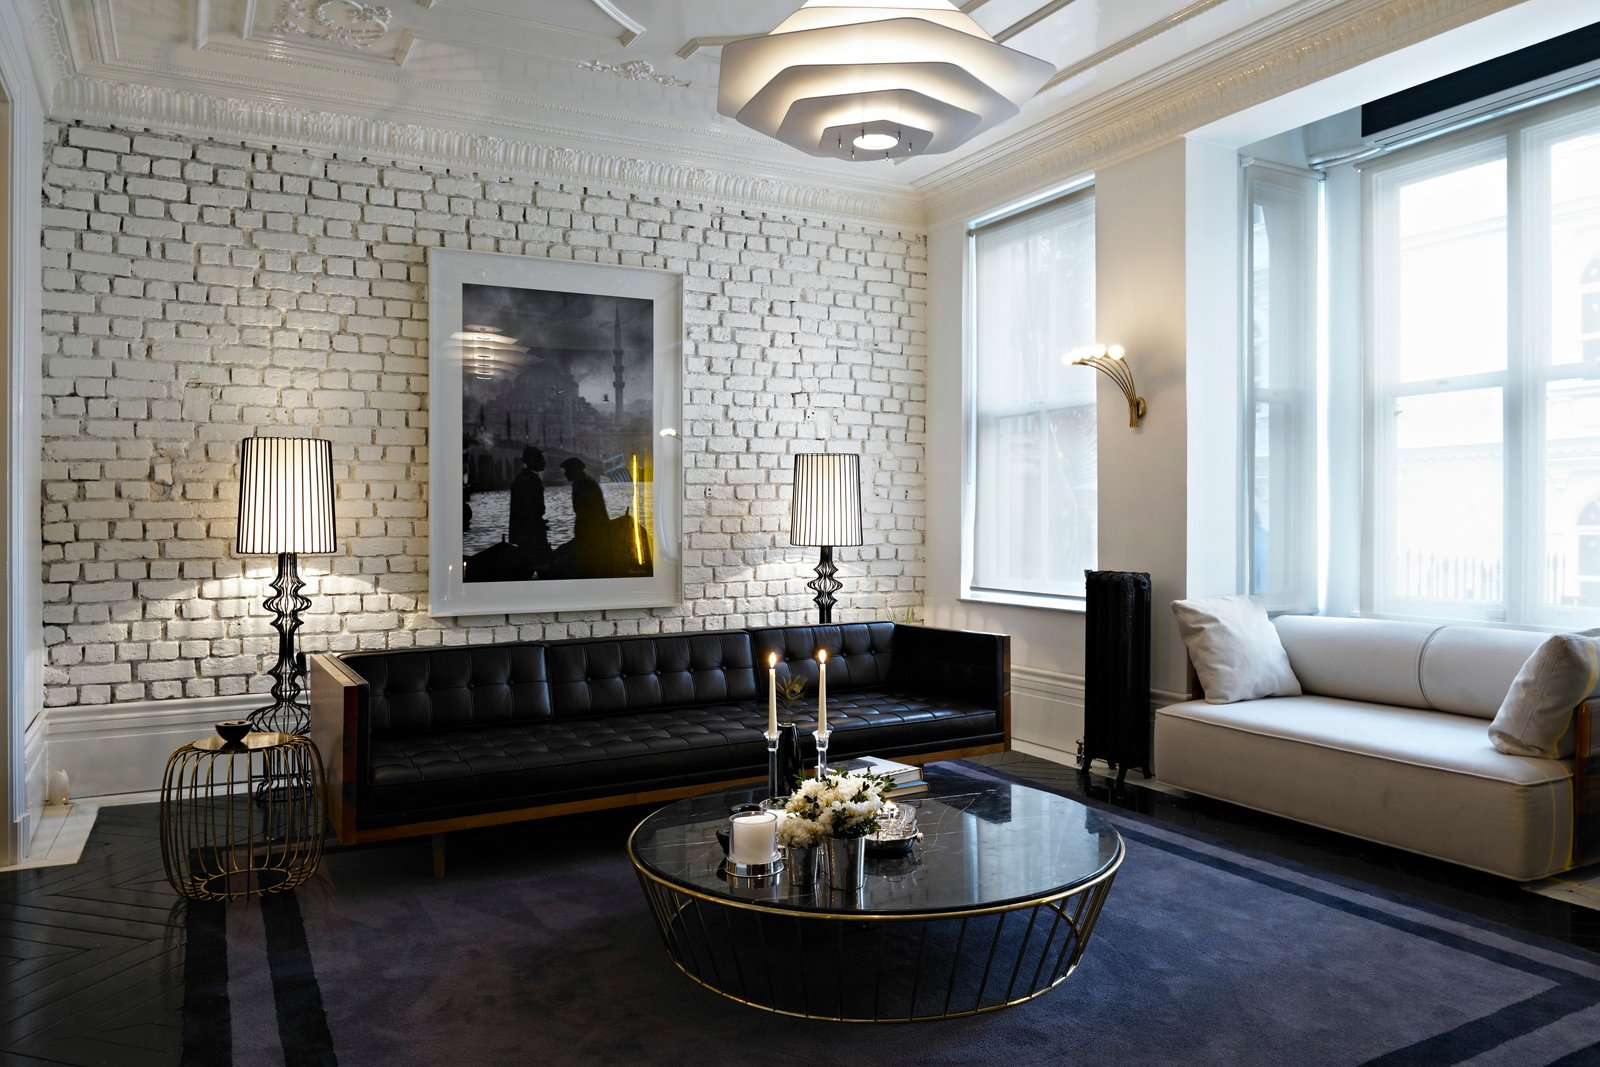 For another residence in Turkey, the pair used brass and leather as luxurious counterpoints to whitewashed brick.  exposed brick from Autoban and their House Hotel